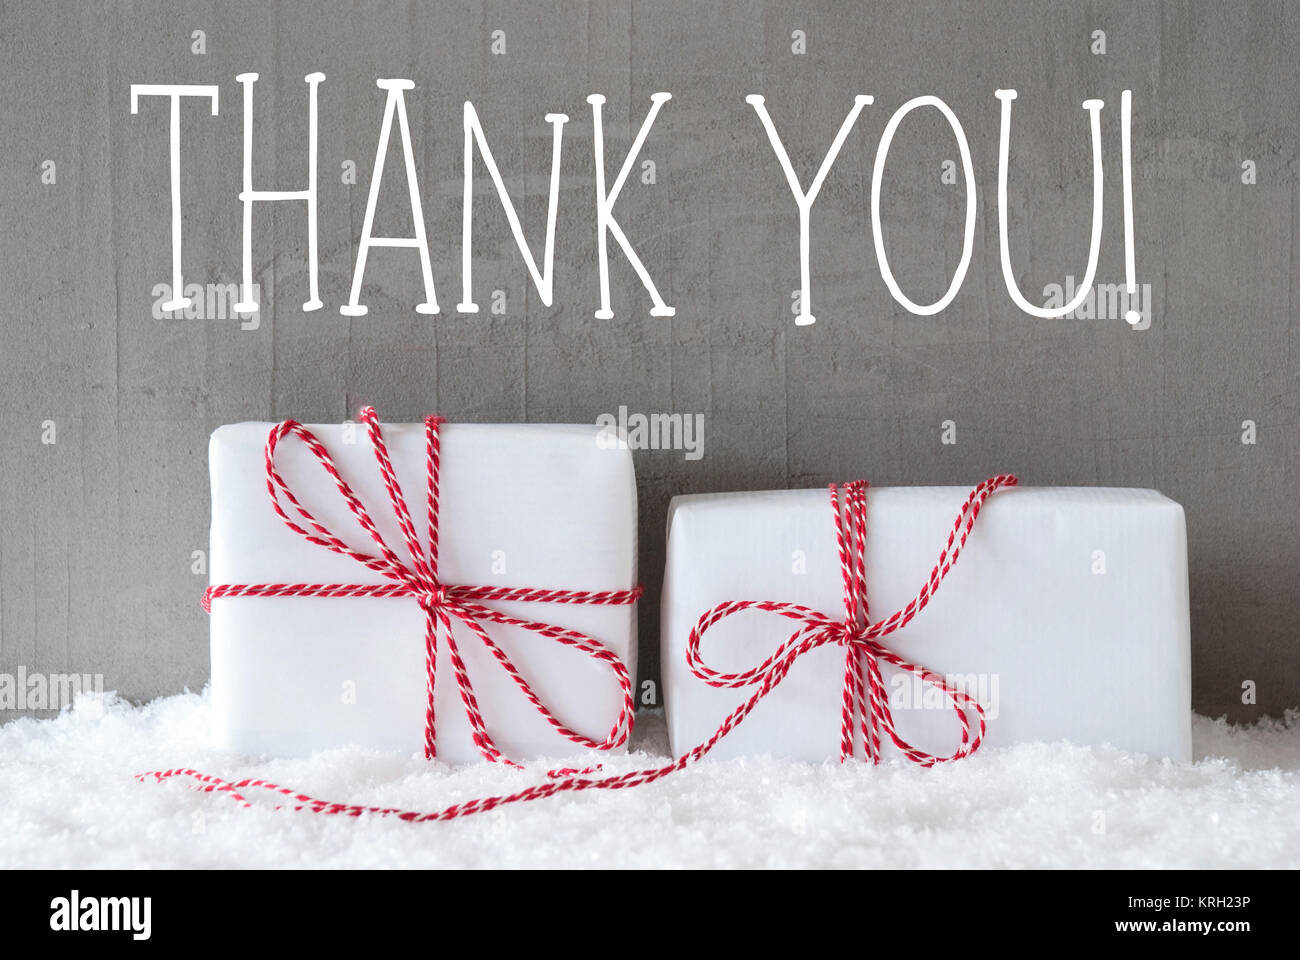 English Text Thank You. Two White Christmas Gifts Or Presents On ...